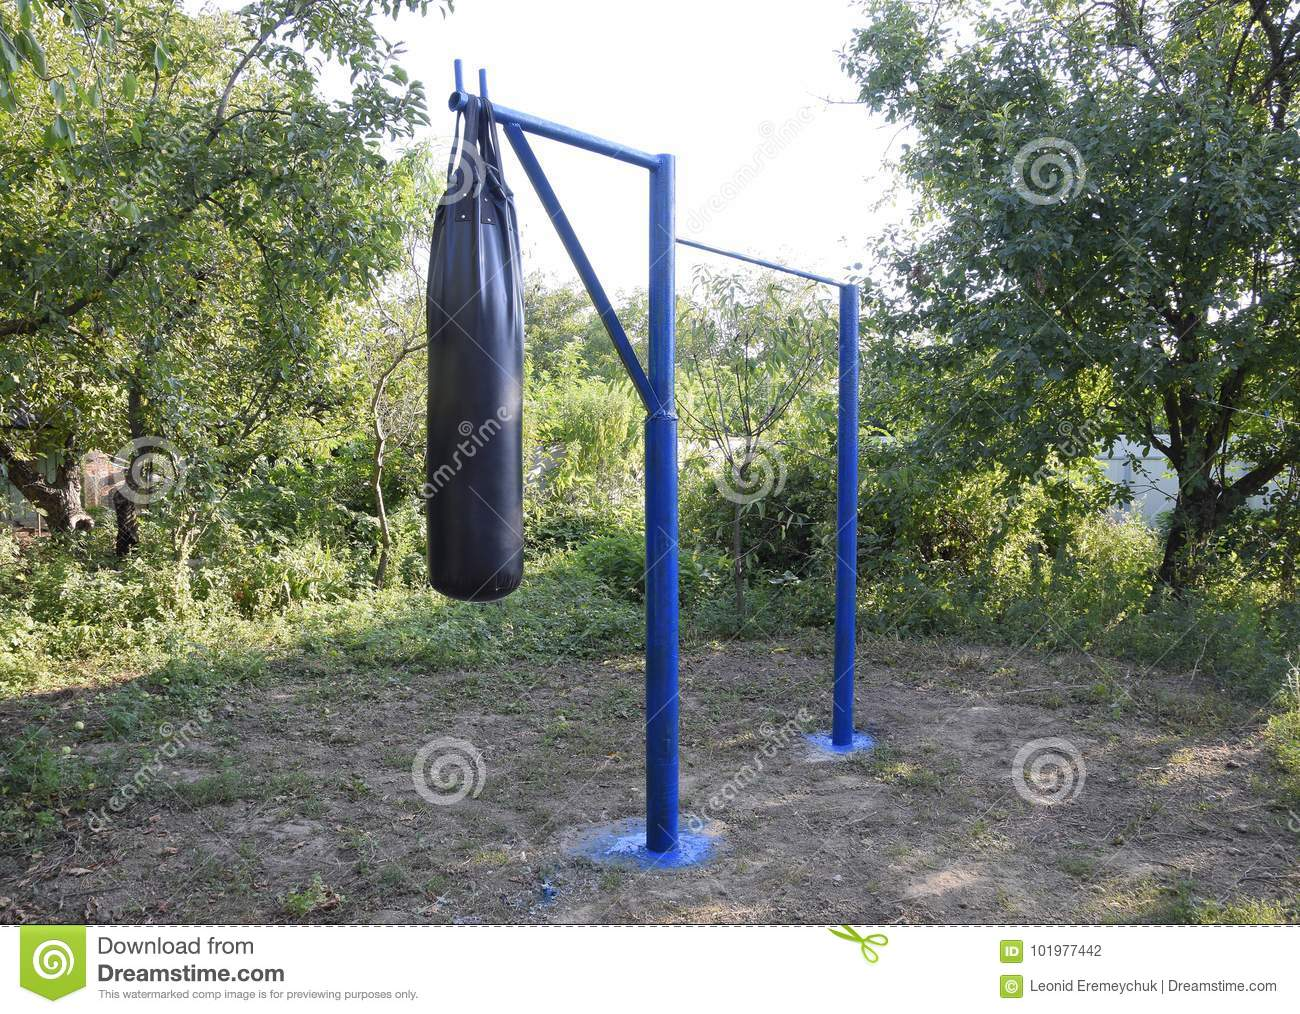 Homemade Bar With A Punching Bag Outdoors In The Garden Stock Photo